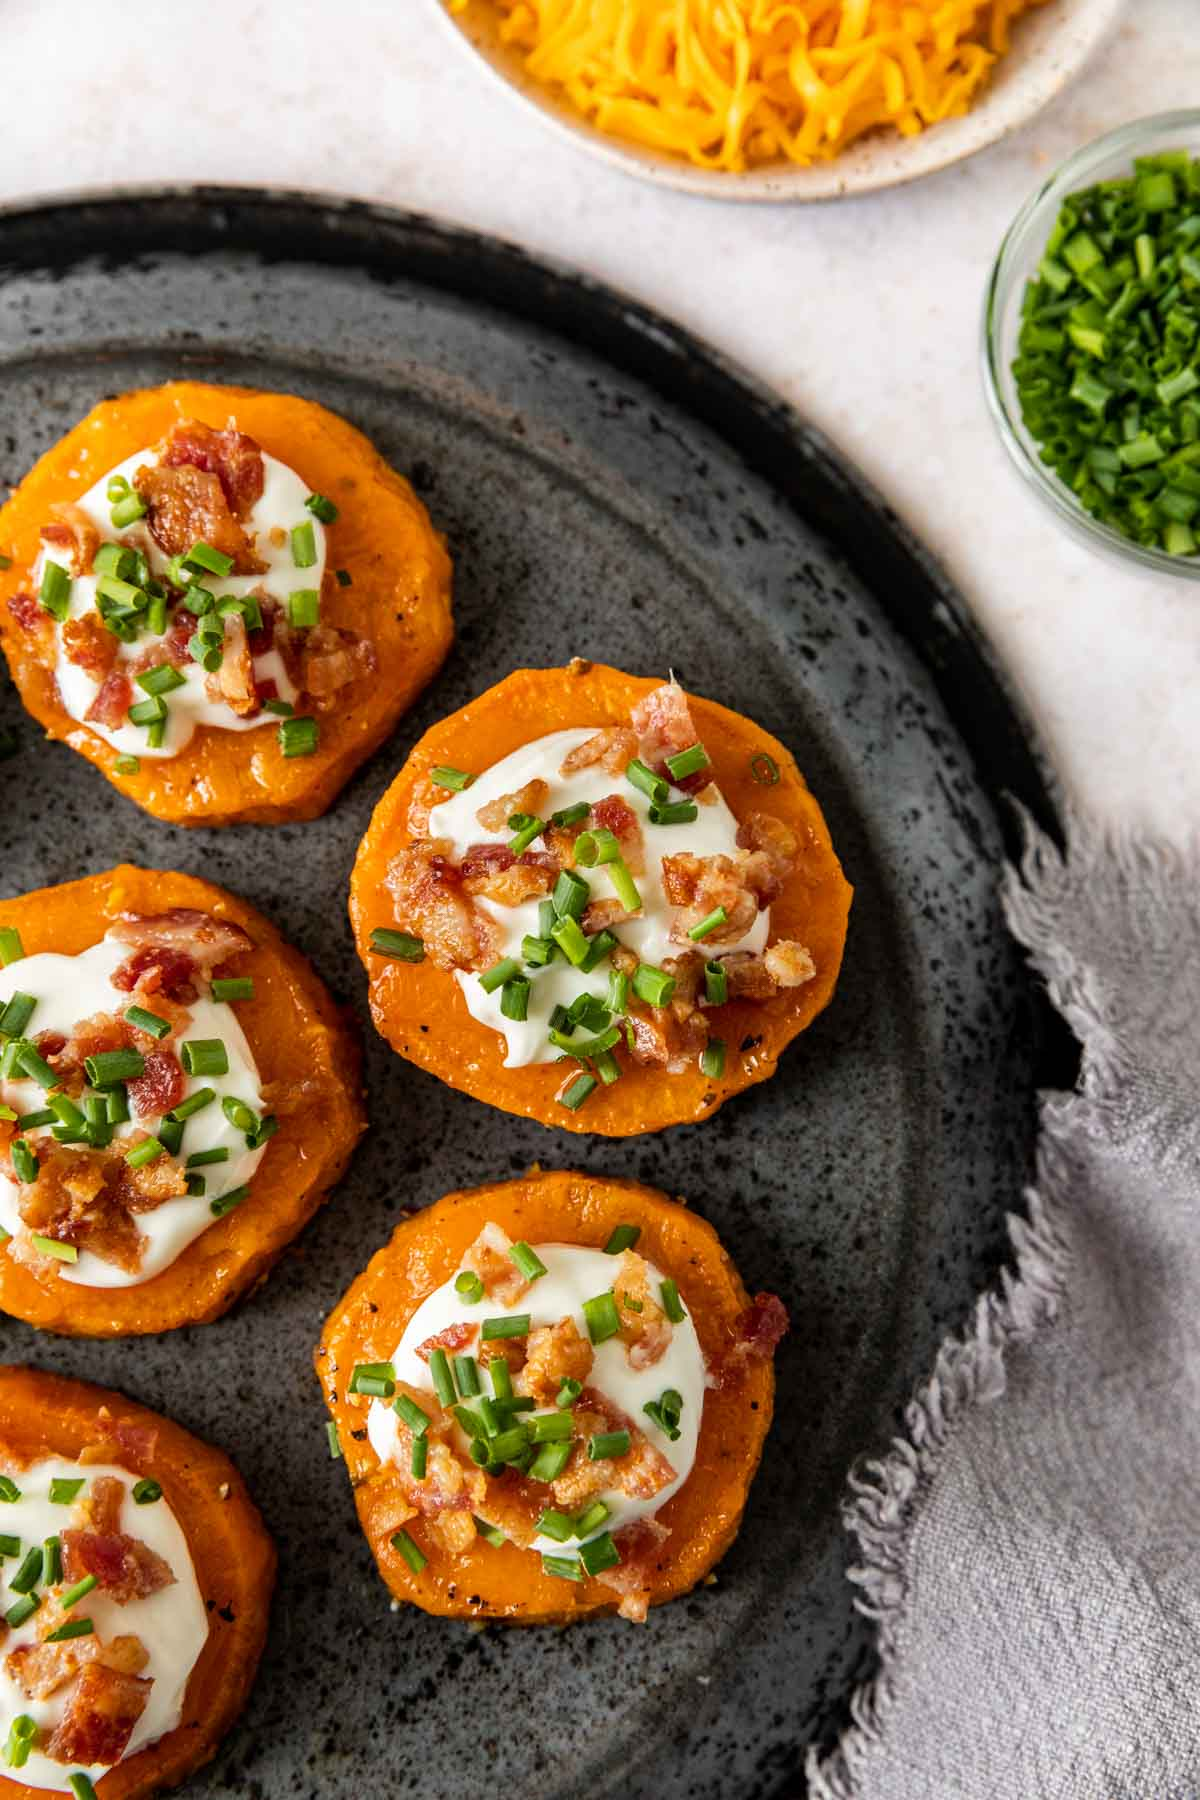 Roasted Sweet Potato Rounds on plate